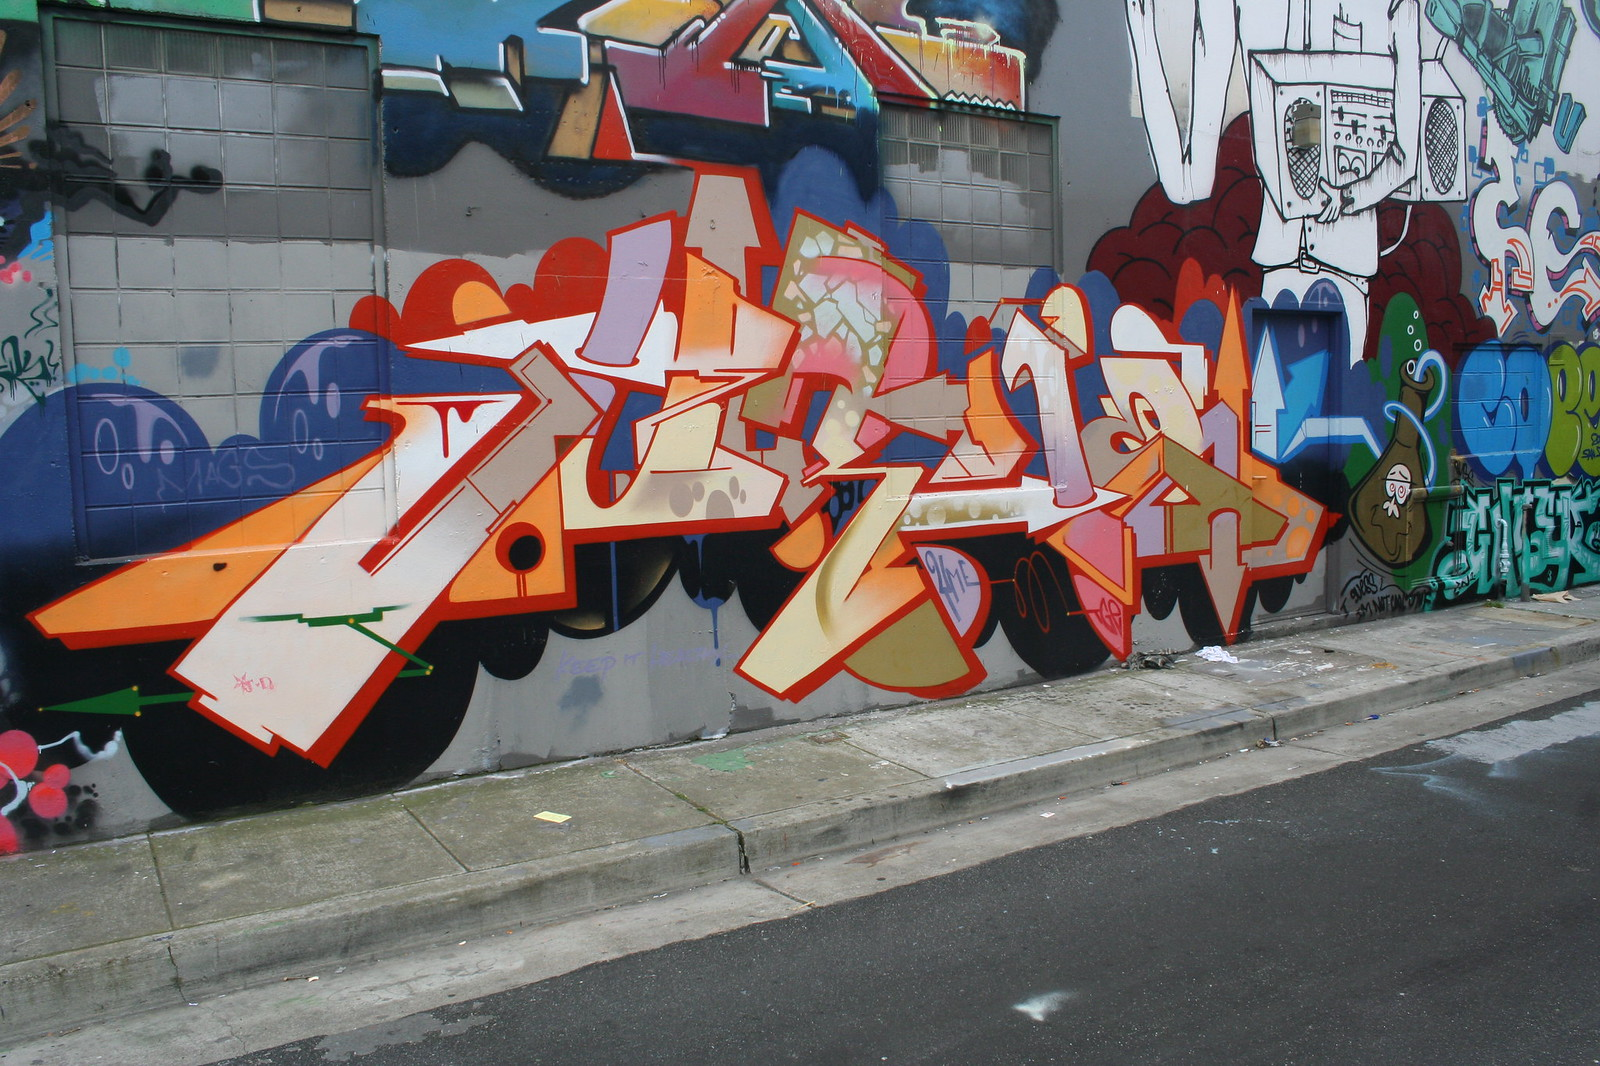 Jurne Graffiti in San Francisco